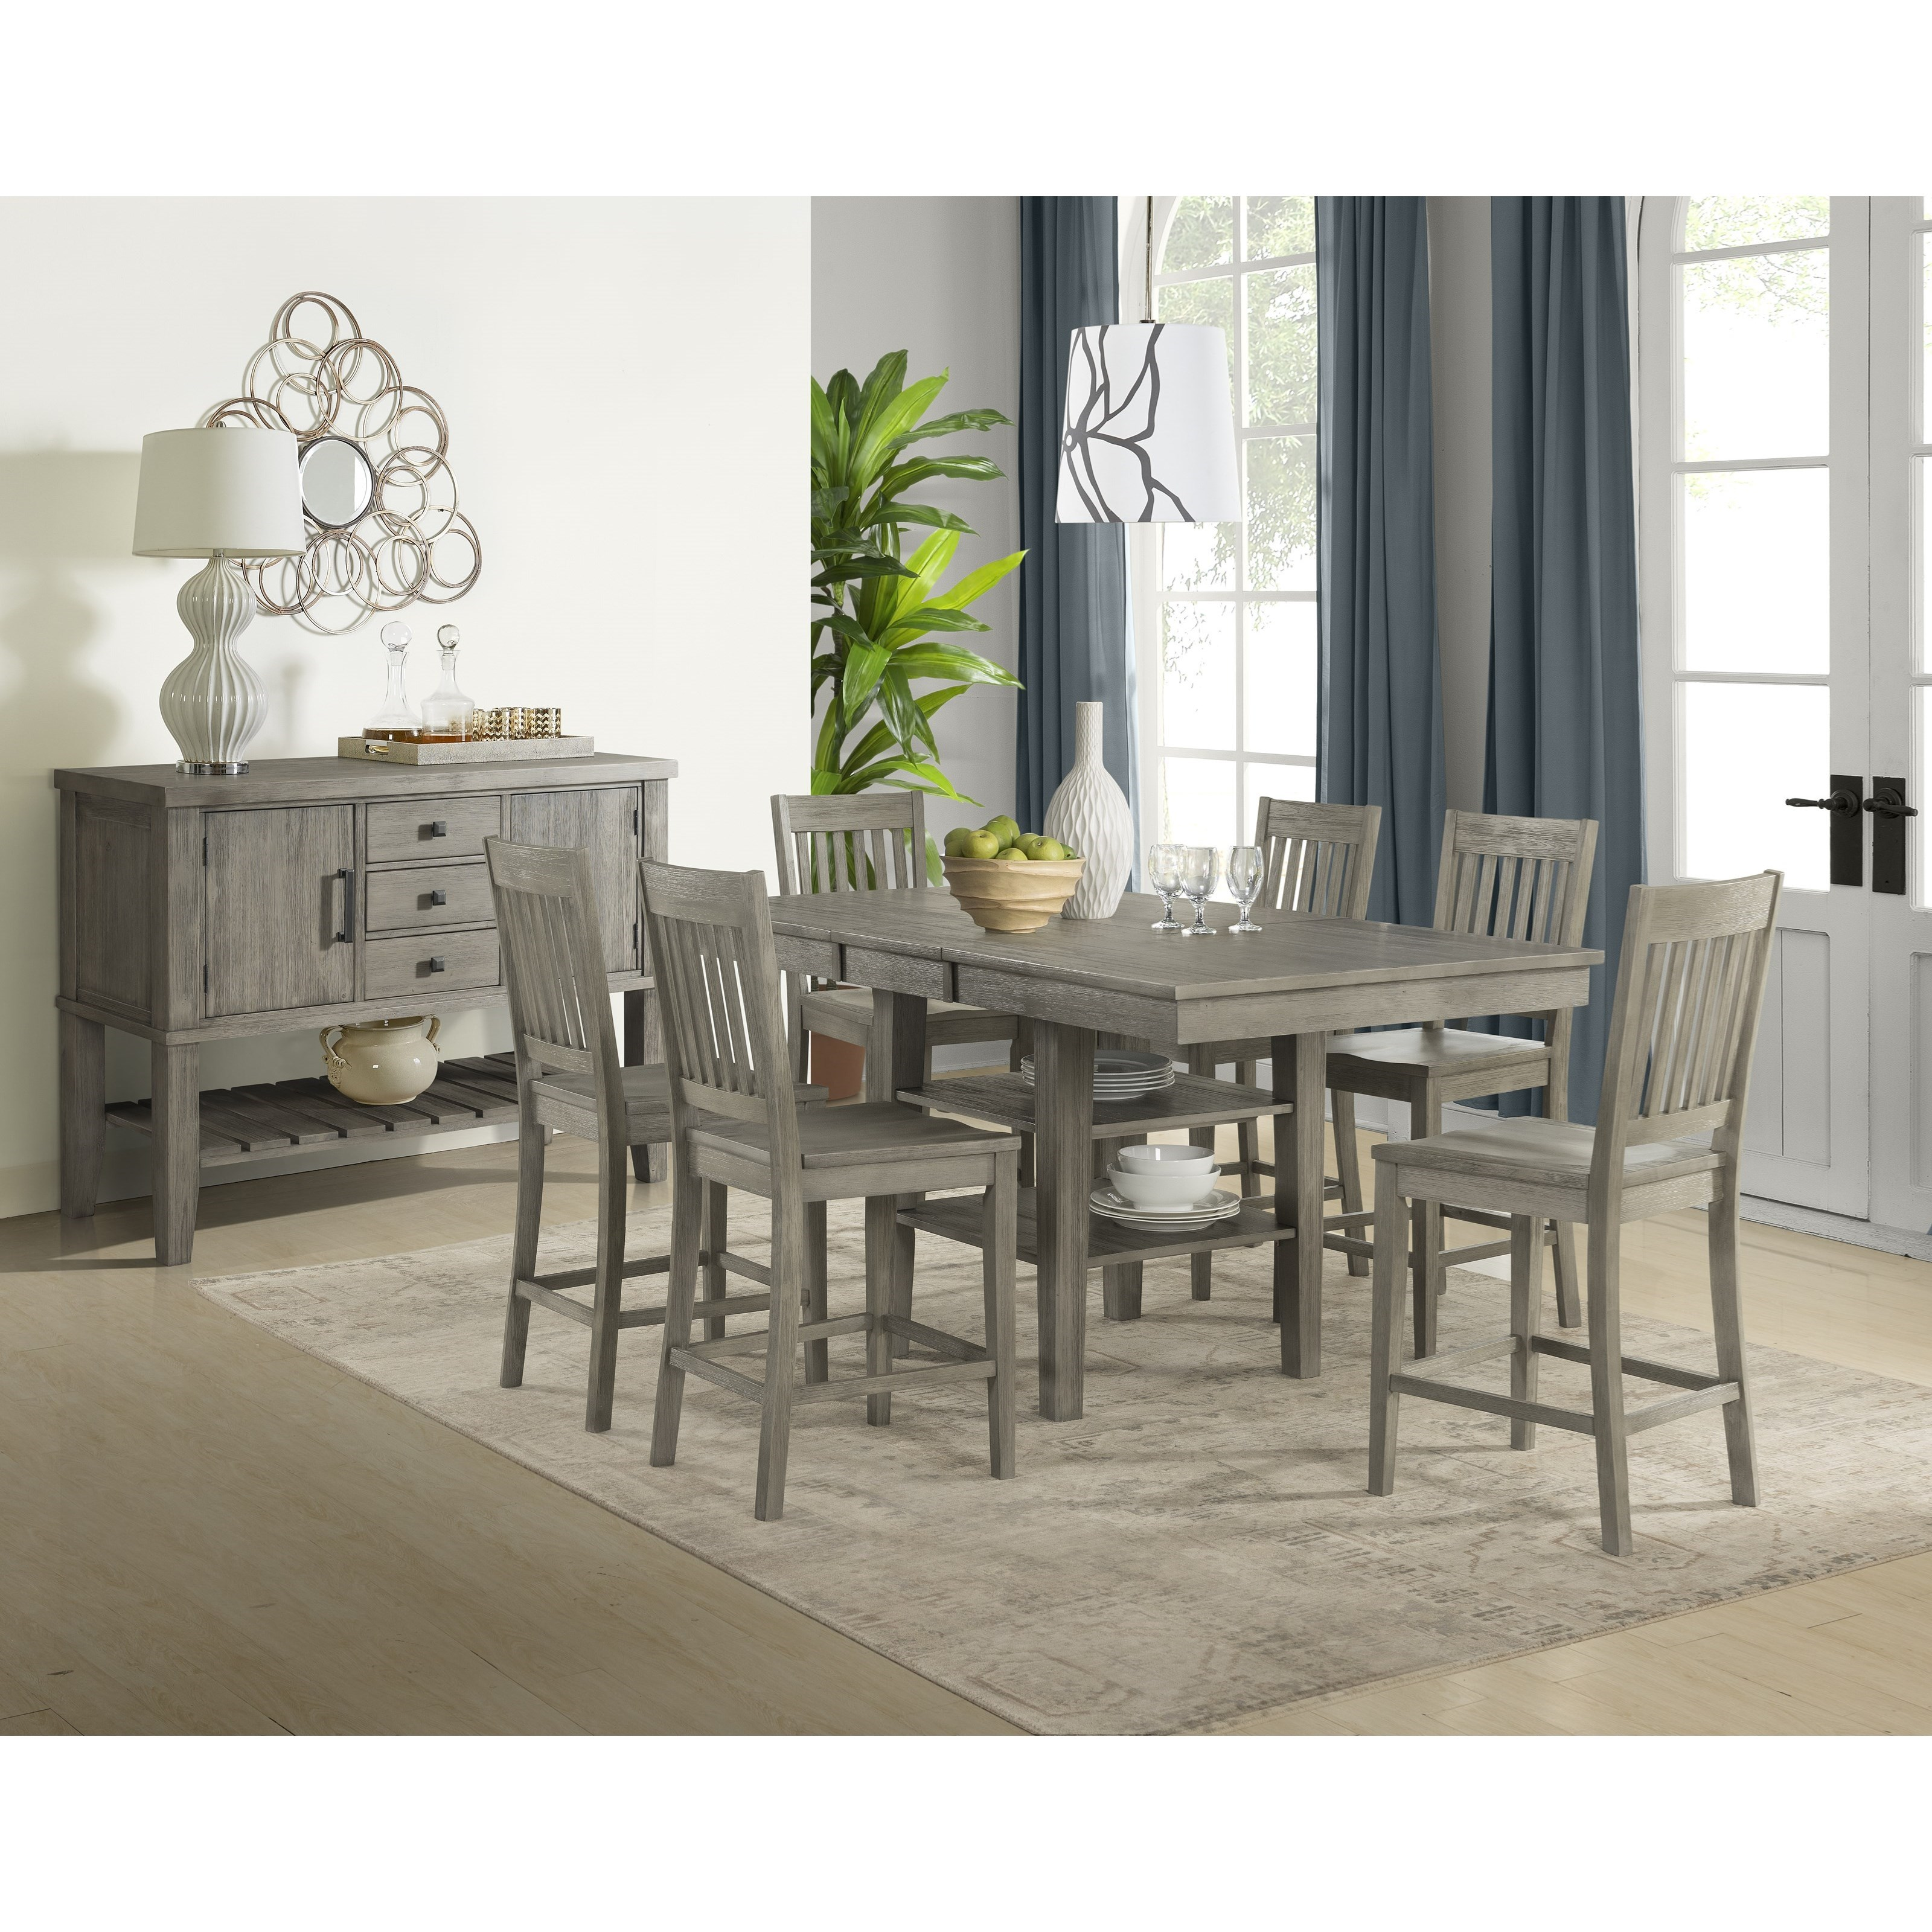 Huron Formal Dining Room Goup by AAmerica at Wilson's Furniture